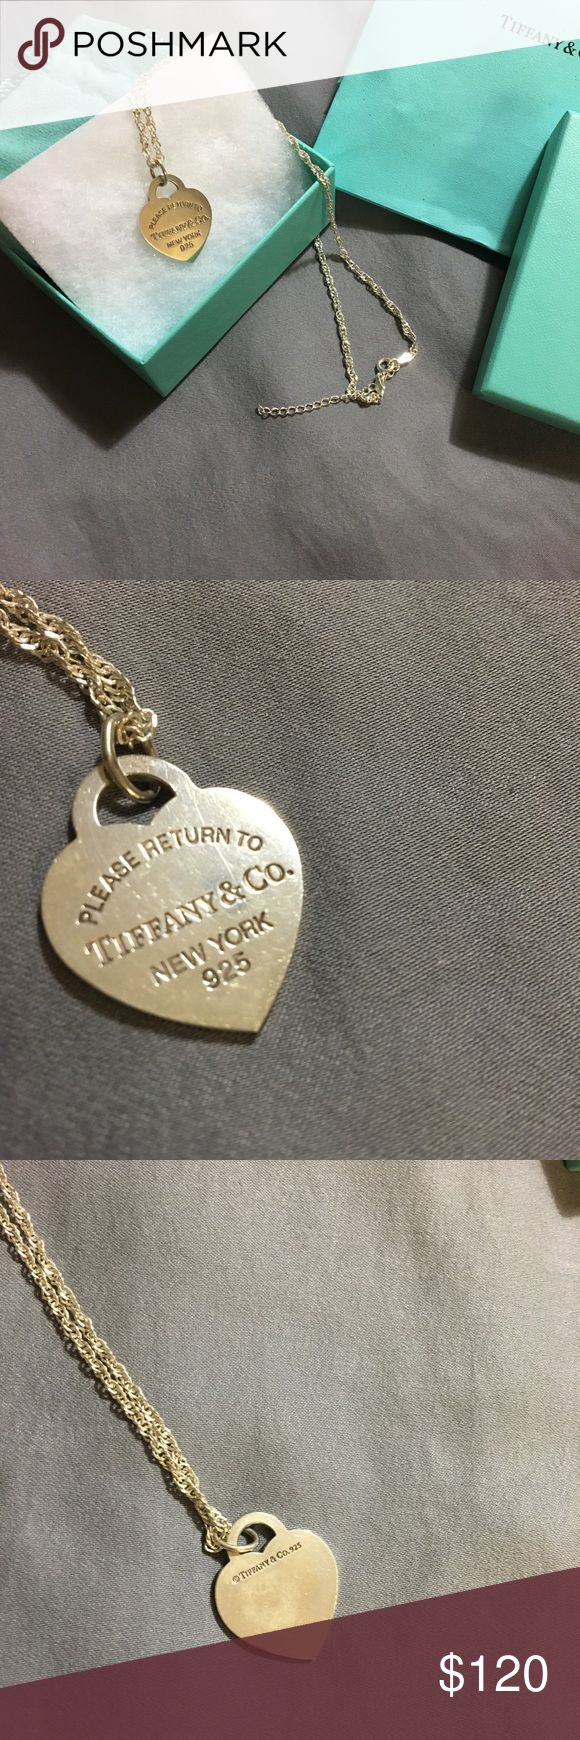 TIFFANY STERLING SILVER NECKLACE Beautiful  9 inch sterling silver necklace by Tiffany only worn a few times comes with box and bag I will put in the shipment a silver bar necklace 6 inches in length Tiffany & Co. Jewelry Necklaces